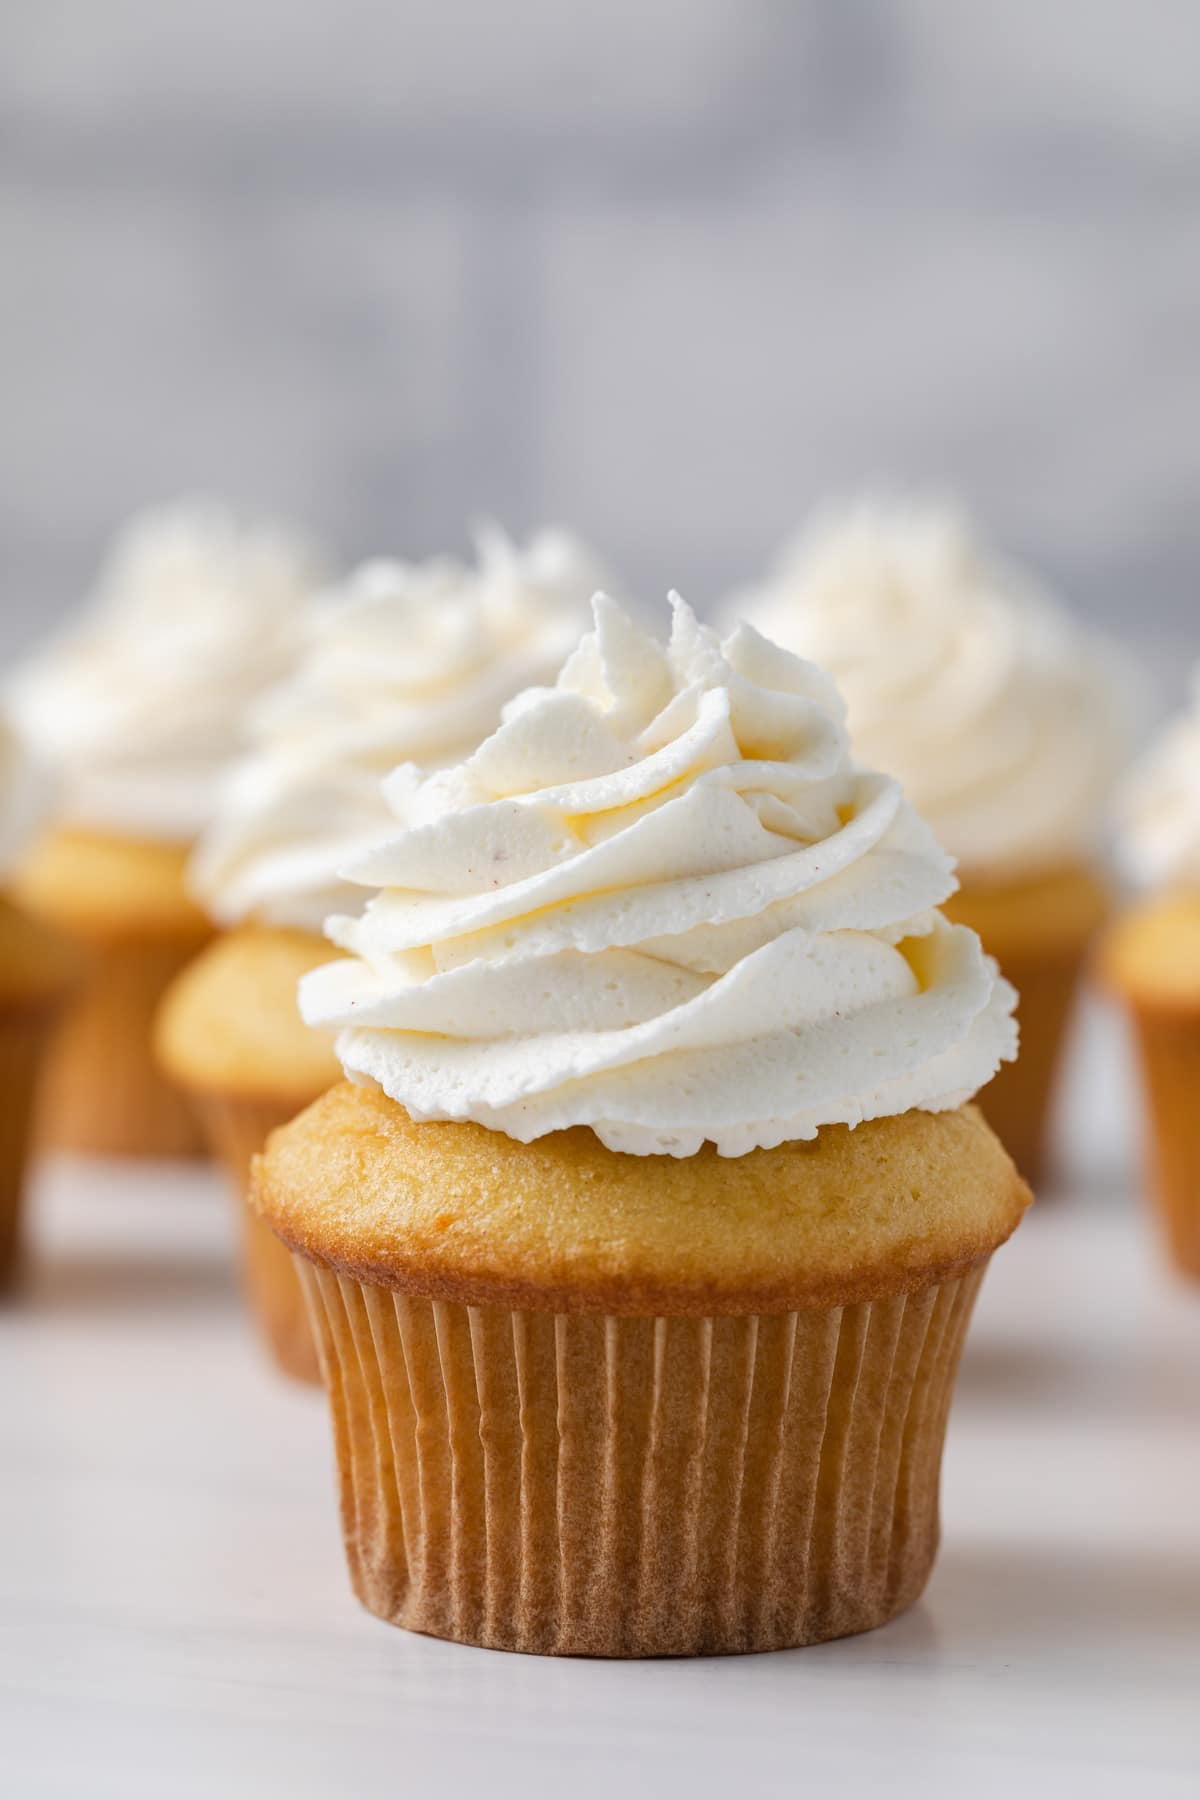 side view of yellow cupcake topped with a fluffy swirl of brown butter frosting